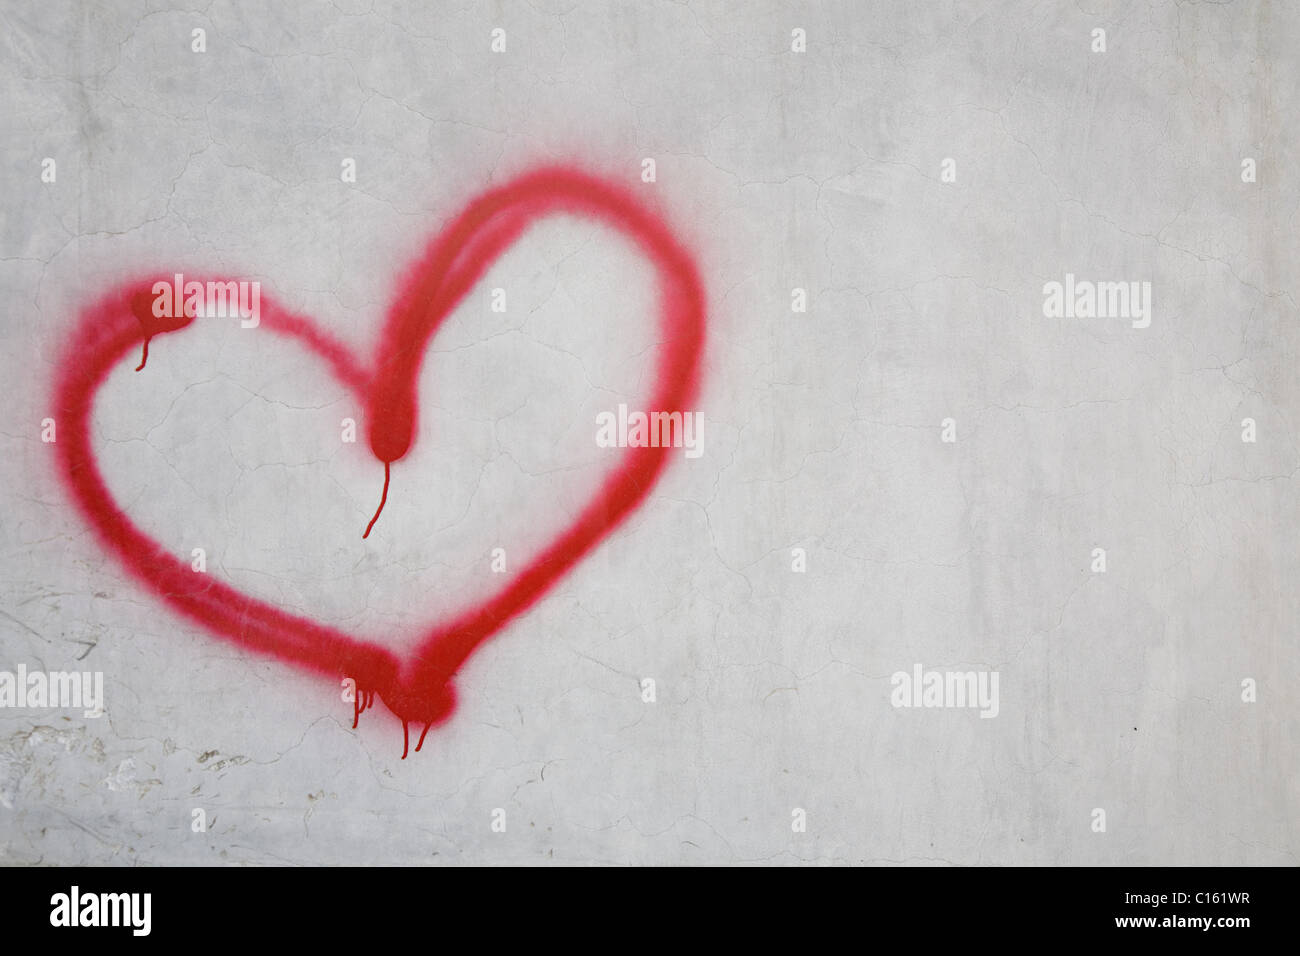 Forme de coeur rouge sur mur blanc Photo Stock